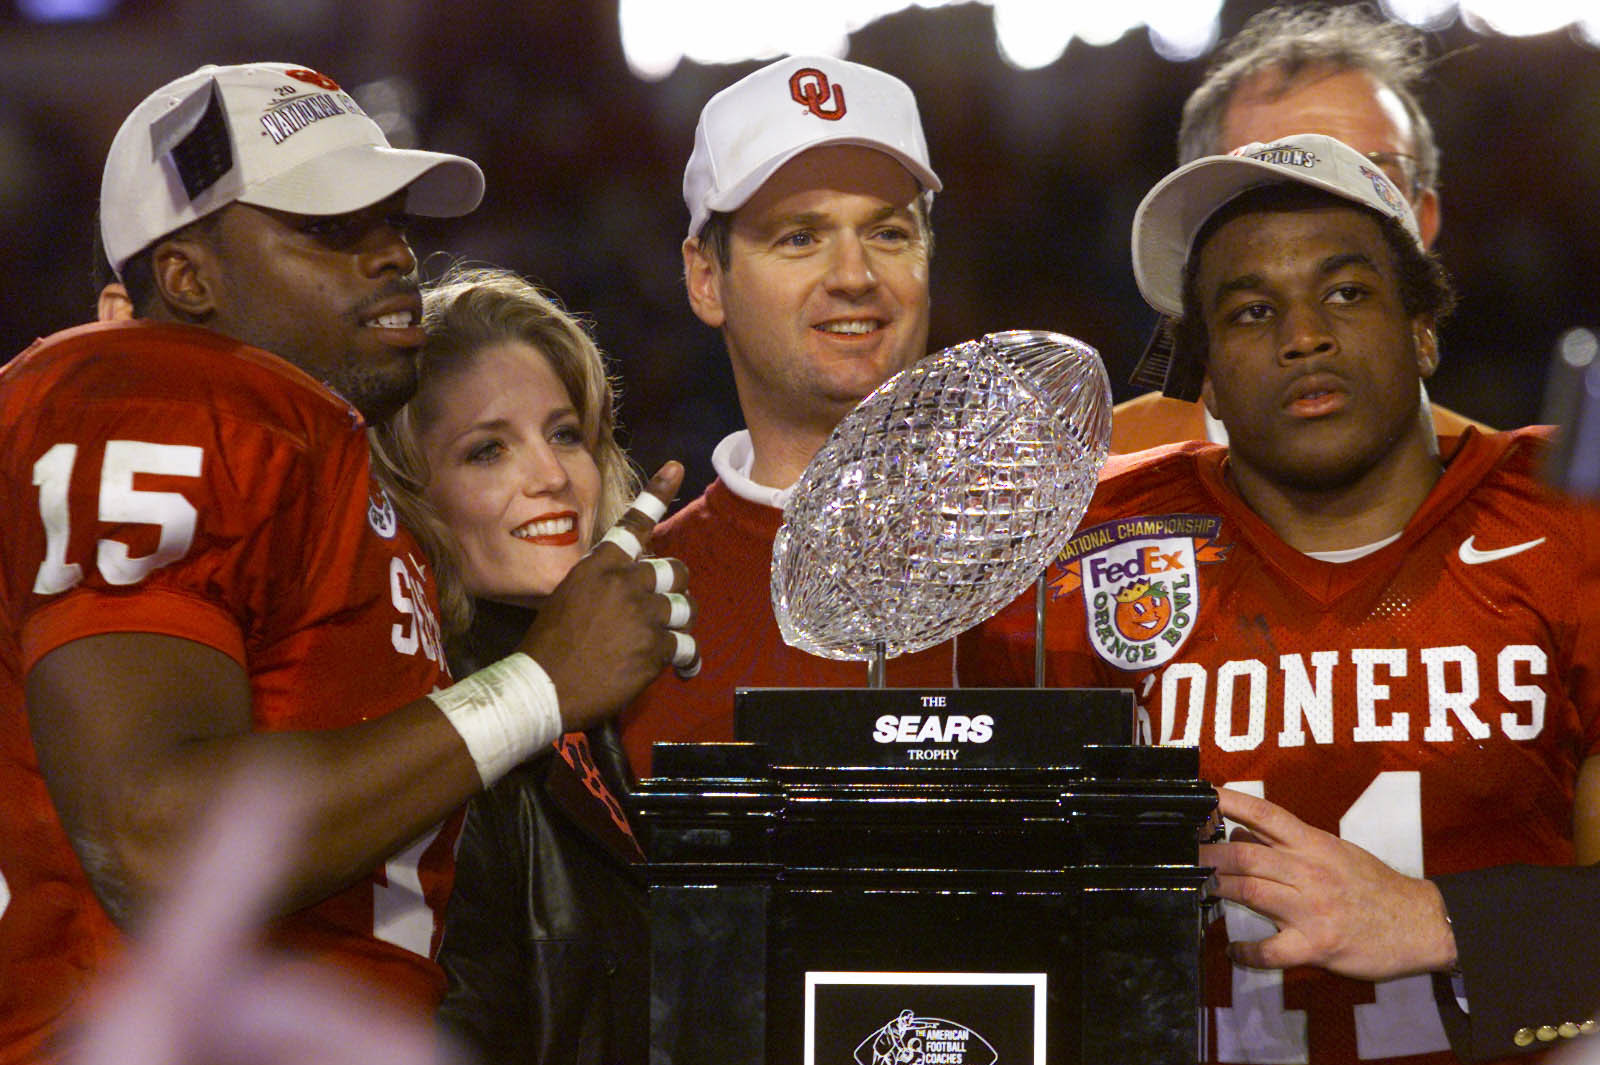 Bob stoops coaching resume free business plan for waste paper recycling